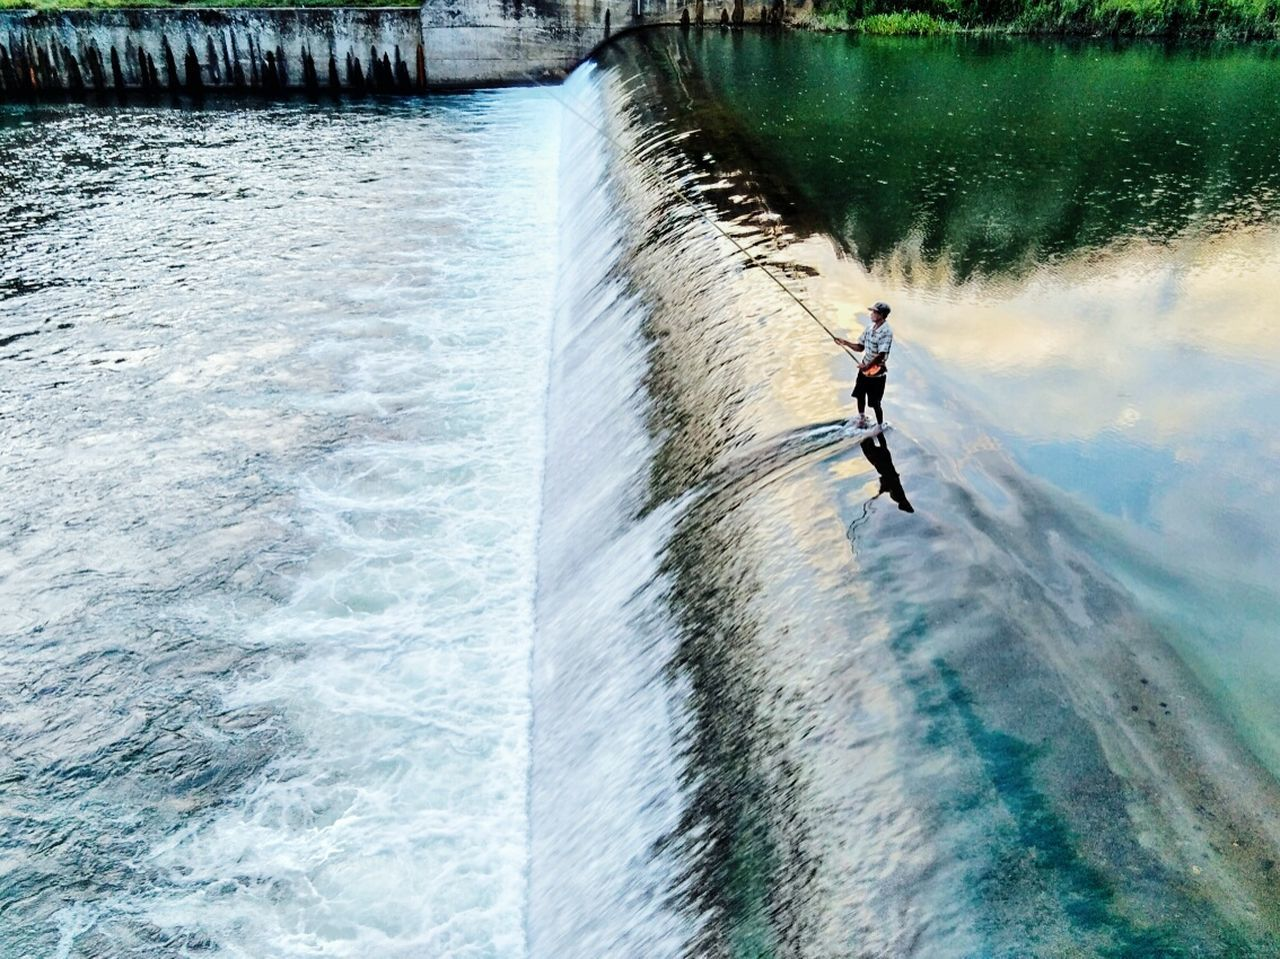 Live For The Story Water Fishing Motion Day One Person Full Length Men Outdoors Real People Adventure Sport Nature People Adult Extreme Sports One Man Only Adults Only Only Men Eye4photography  EyeEmNewHere , Barabai South Kalimantan INDONESIA